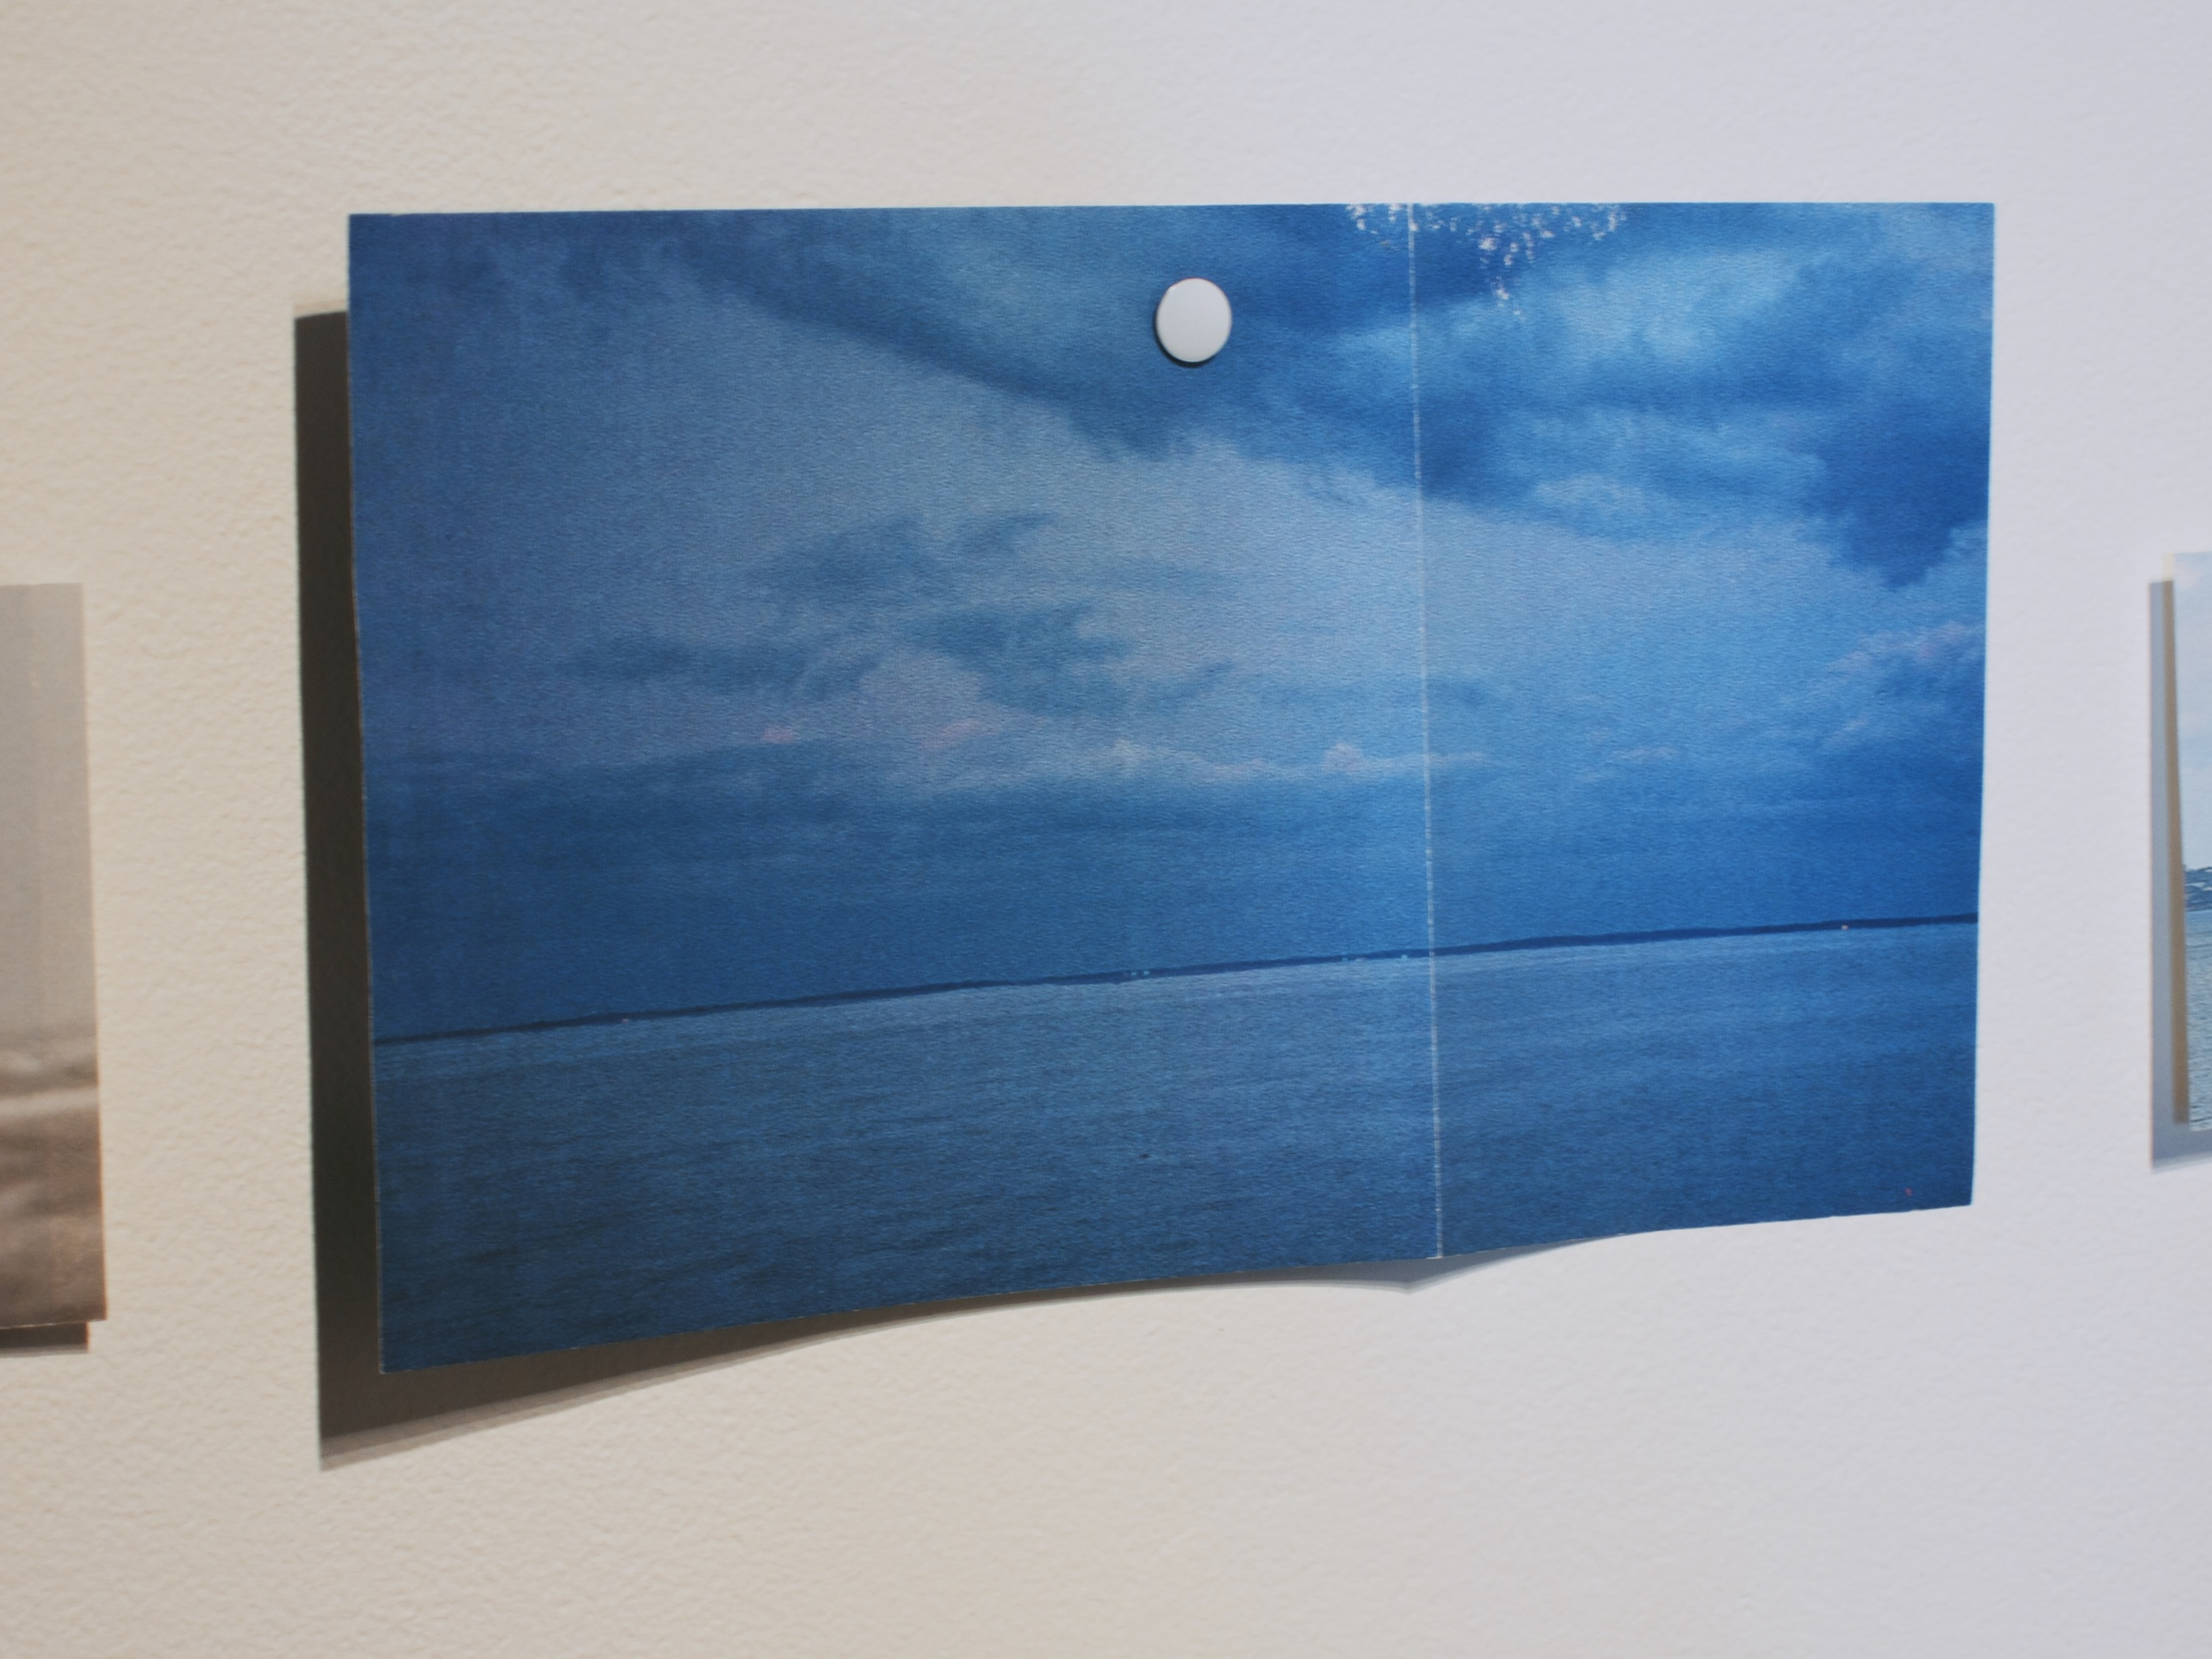 Cut out National Geographic image of ocean horizon pinned to the wall, 2014.